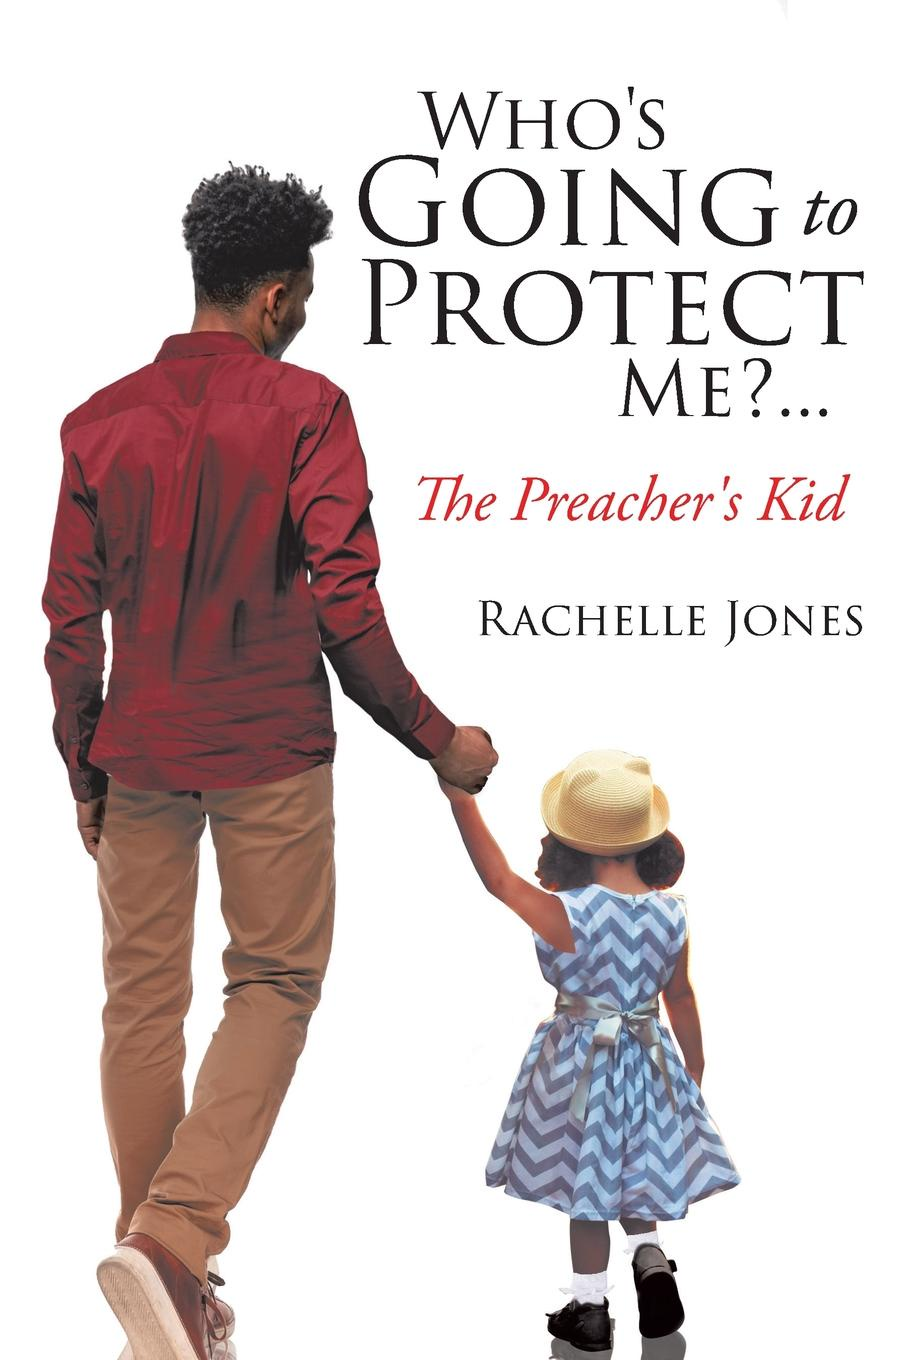 Rachelle Jones Who.s Going to Protect Me.... The Preacher.s Kid батарея apc rbc33 для br1500i